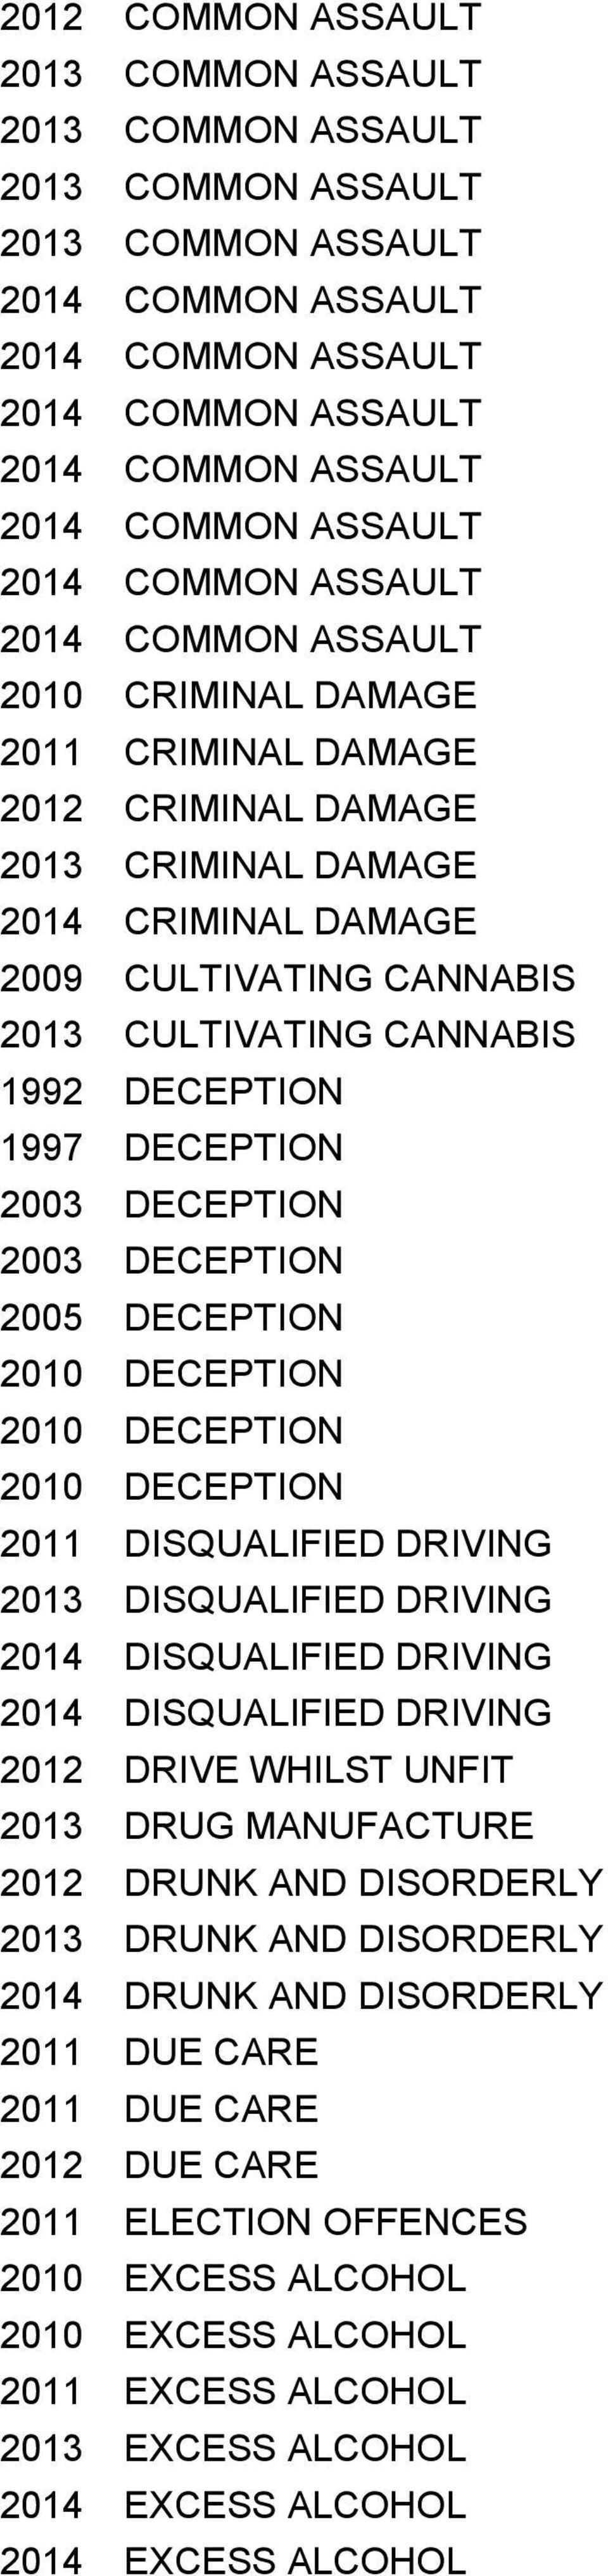 DRIVING 2013 DISQUALIFIED DRIVING 2014 DISQUALIFIED DRIVING 2014 DISQUALIFIED DRIVING 2012 DRIVE WHILST UNFIT 2013 DRUG MANUFACTURE 2012 DRUNK AND DISORDERLY 2013 DRUNK AND DISORDERLY 2014 DRUNK